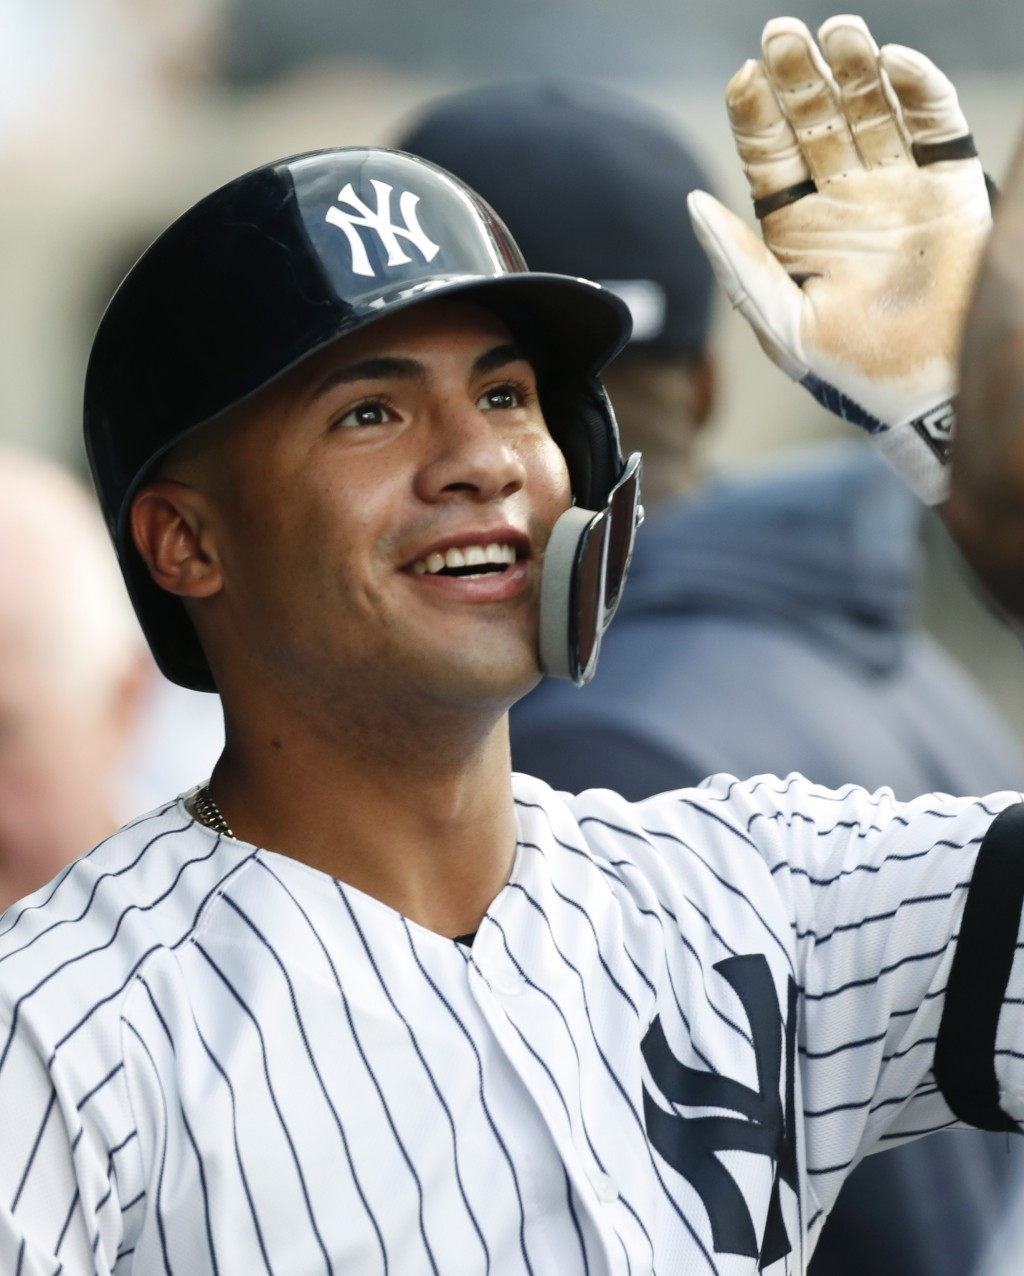 New York Yankees' Gleyber Torres reacts in the dugout after hitting a solo home run against the Toronto Blue Jays during the second inning of a baseba